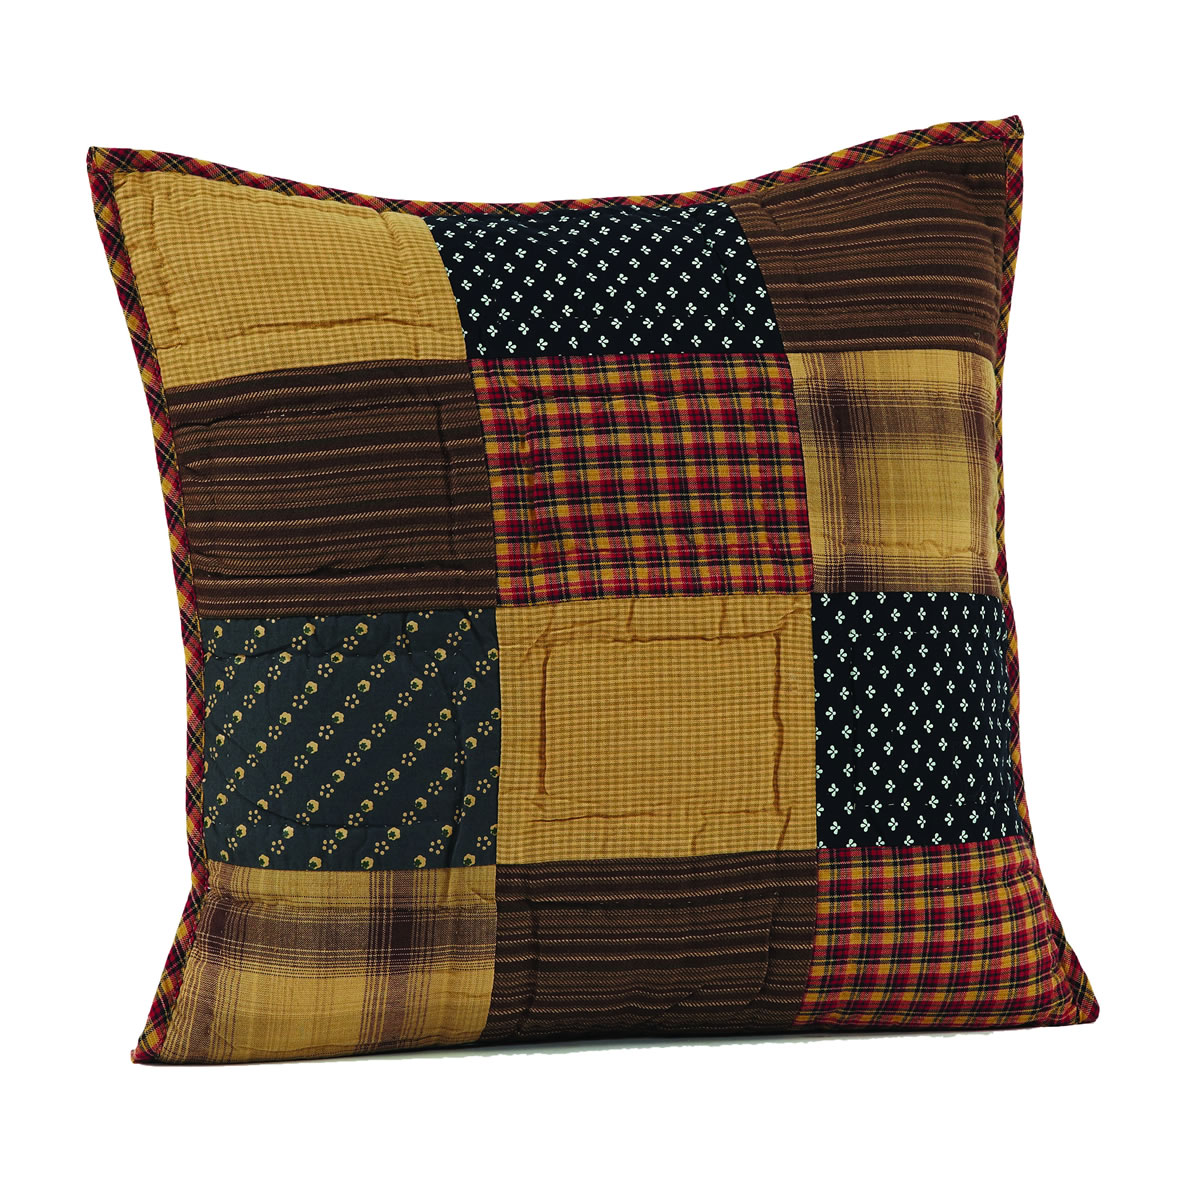 3-pc Patriotic Patch Pillow Set - 1 Quilted, 1 Plaid and 1 Little Pillow - VHC